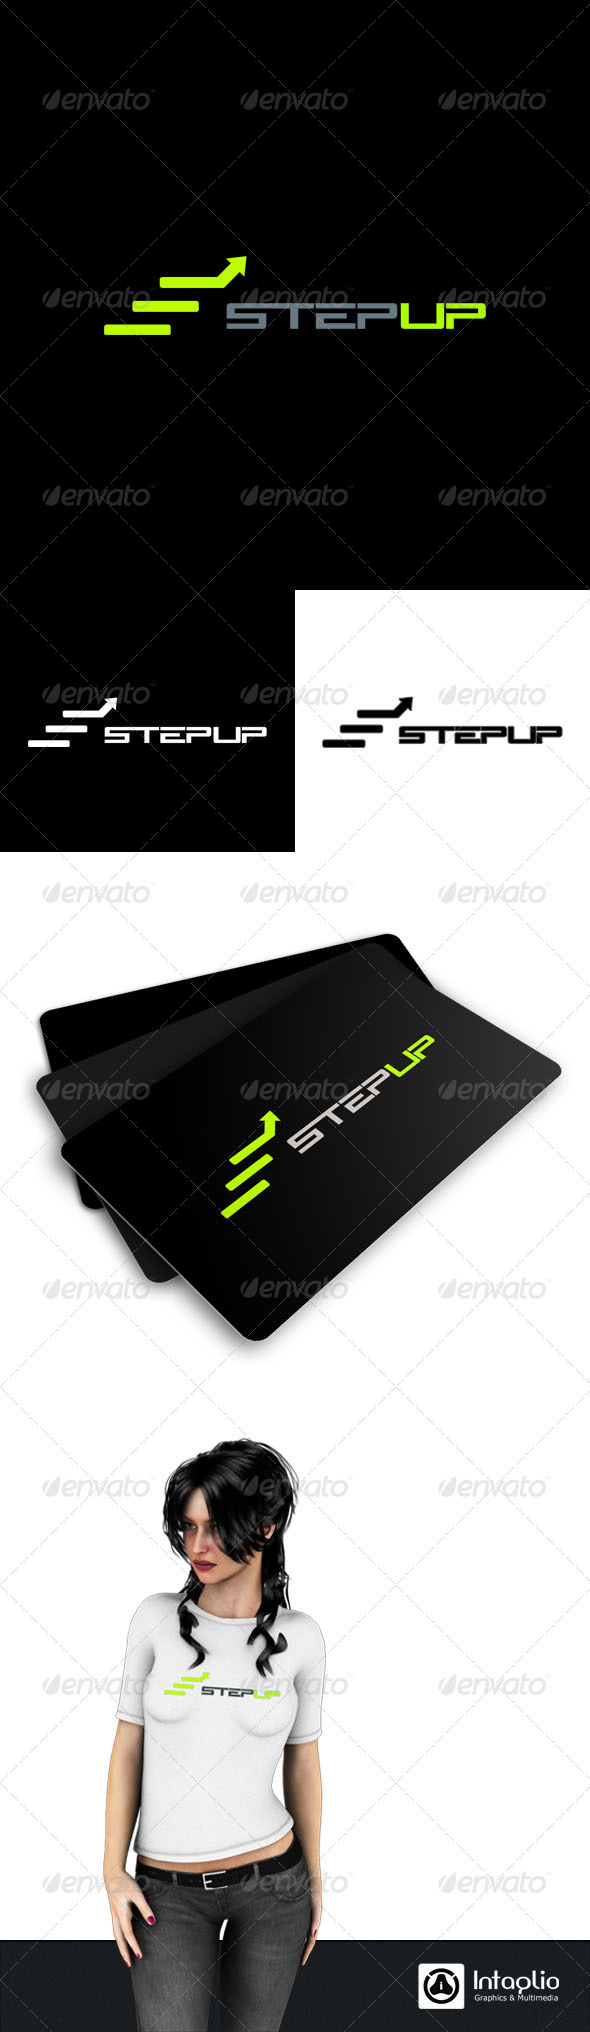 StepUp Logo Template - Vector Abstract